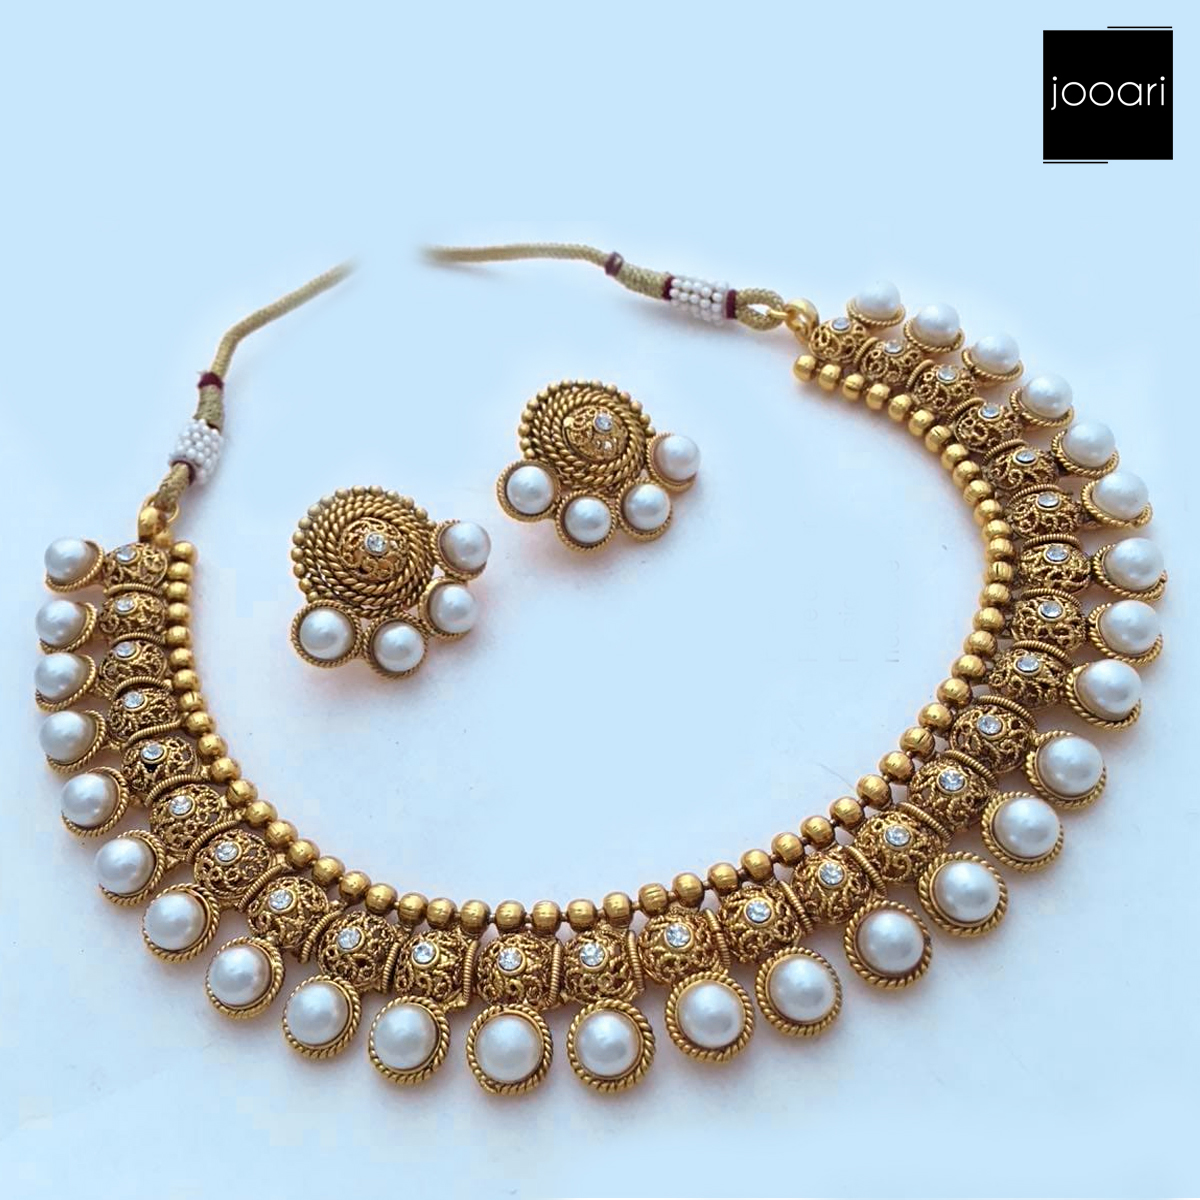 New Antique White Pearl Pure Copper Designer Necklace Set with Earrings for Women and Girls